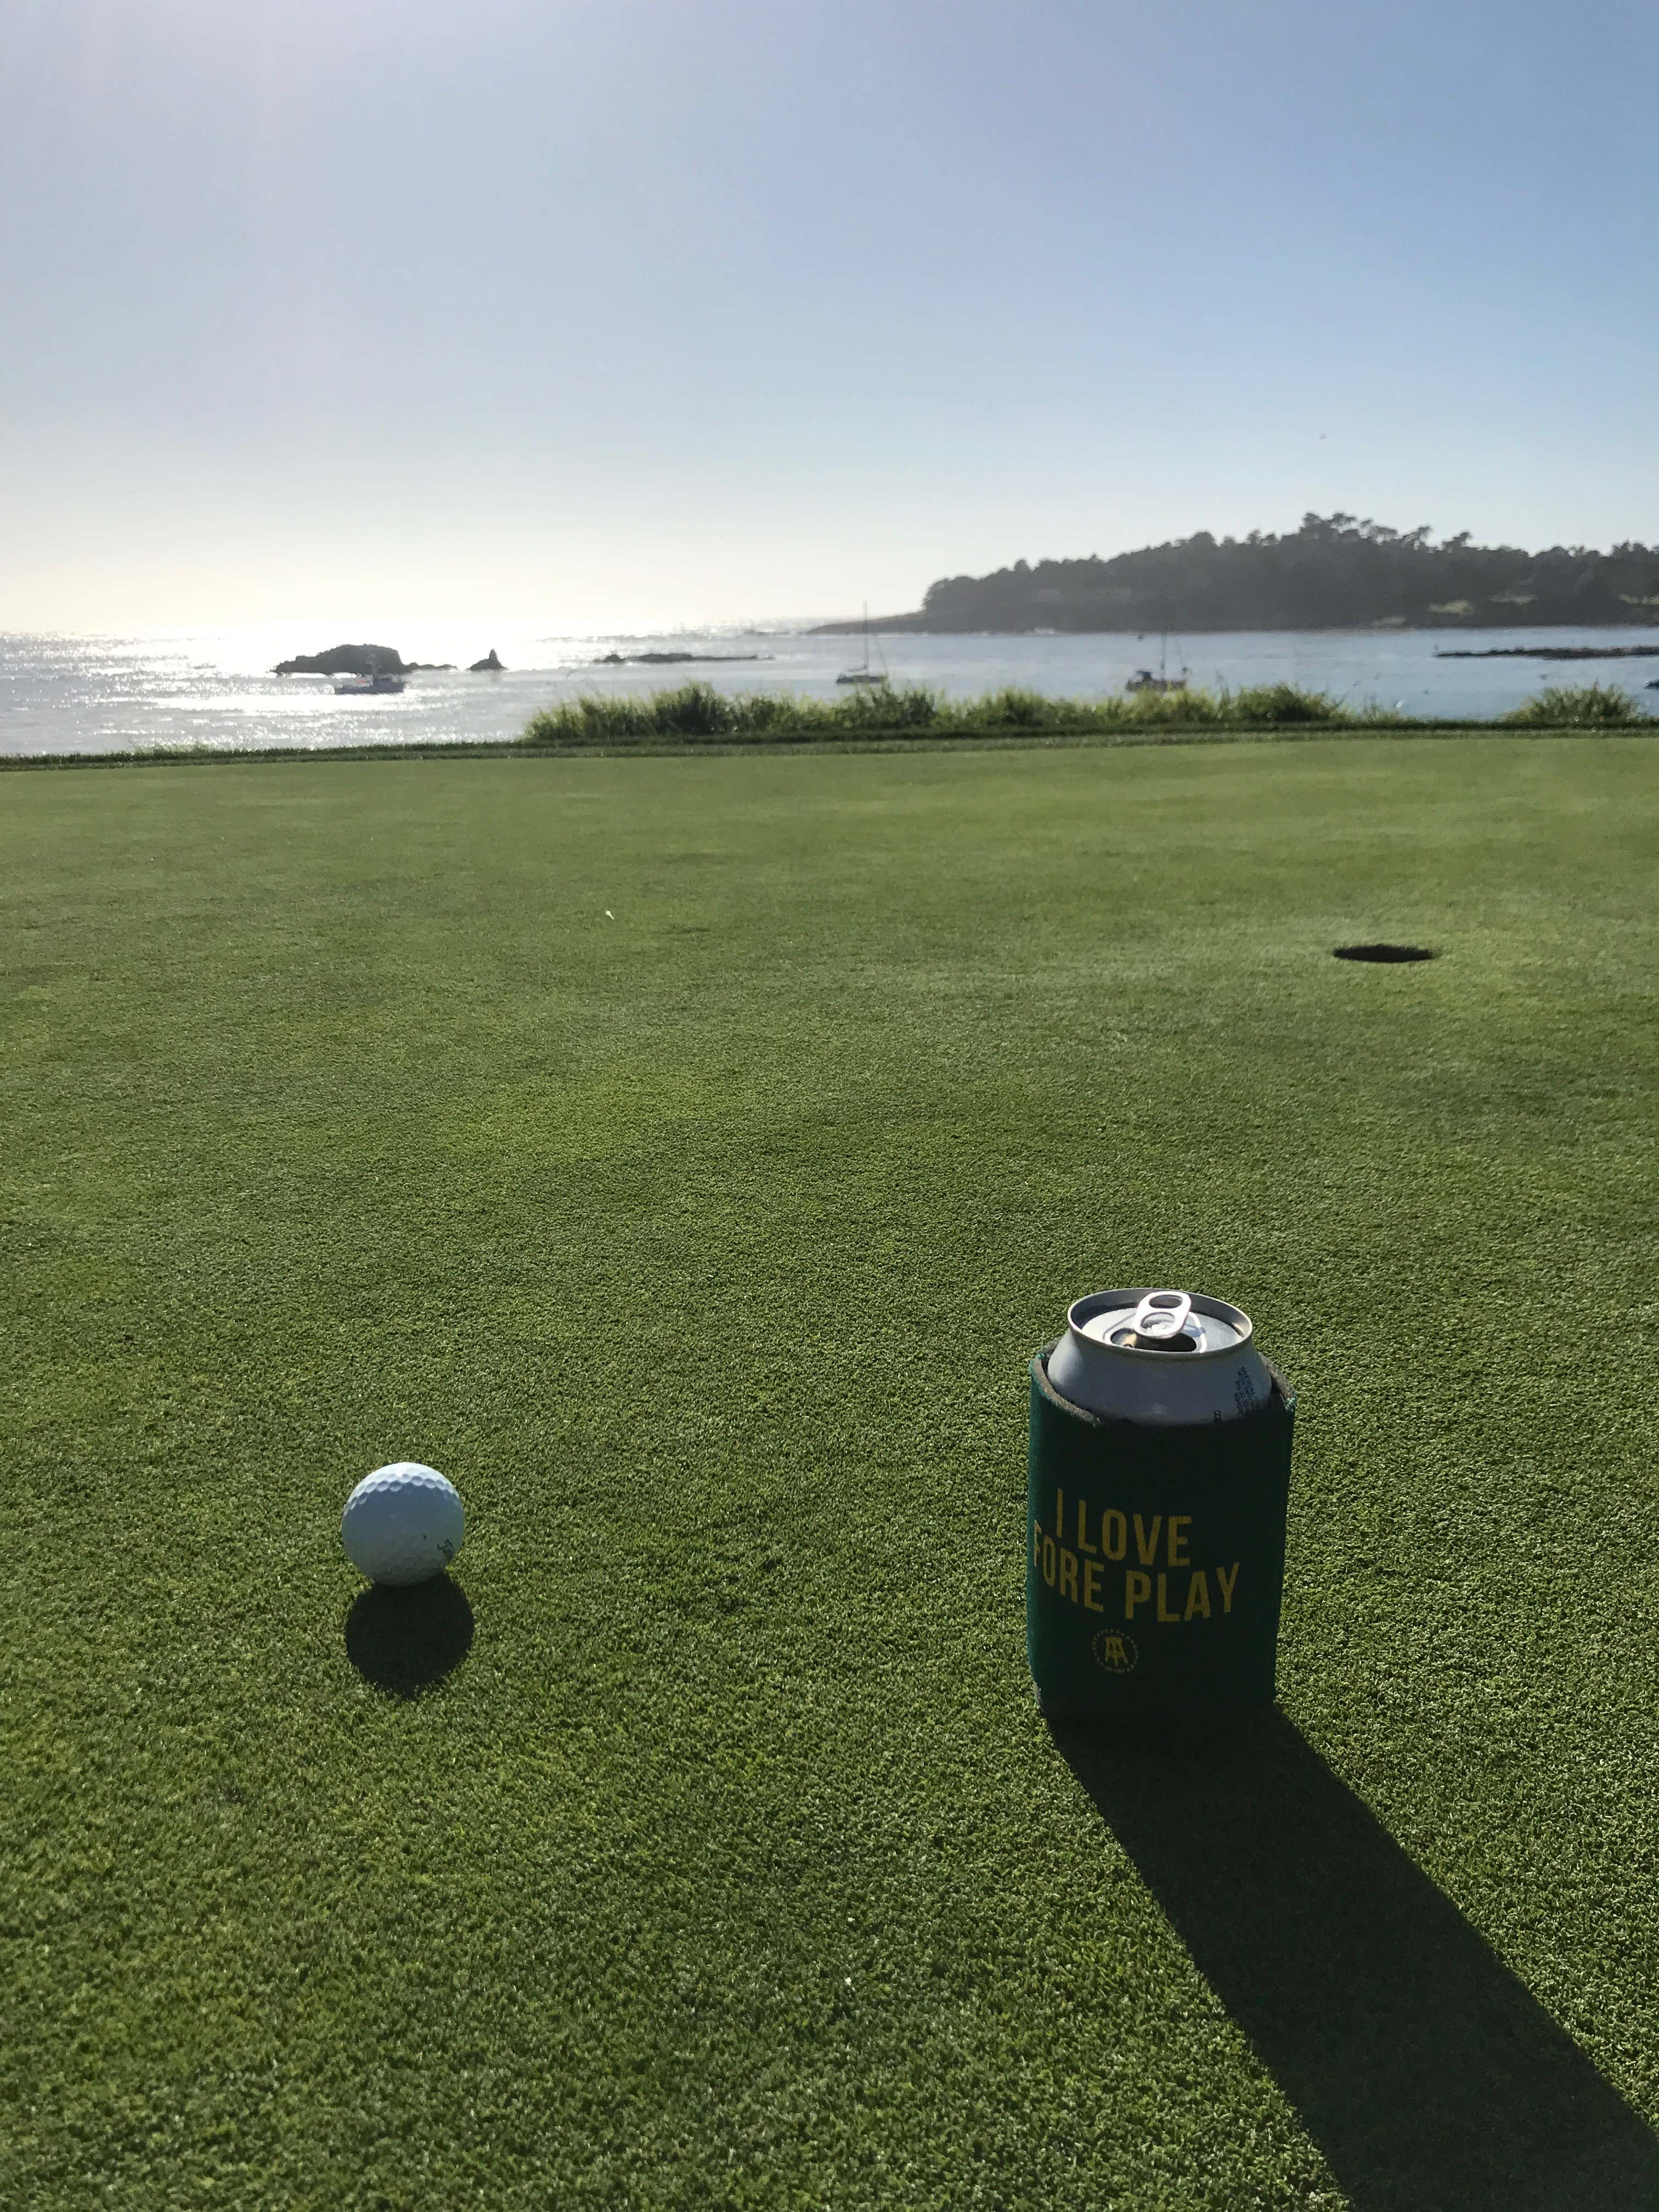 We Actually Played Pebble Twice The First Time Was A Spontaneous Twilight Not Guaranteed To Finish 2 50 Tee In Which 17 And 18 Dark